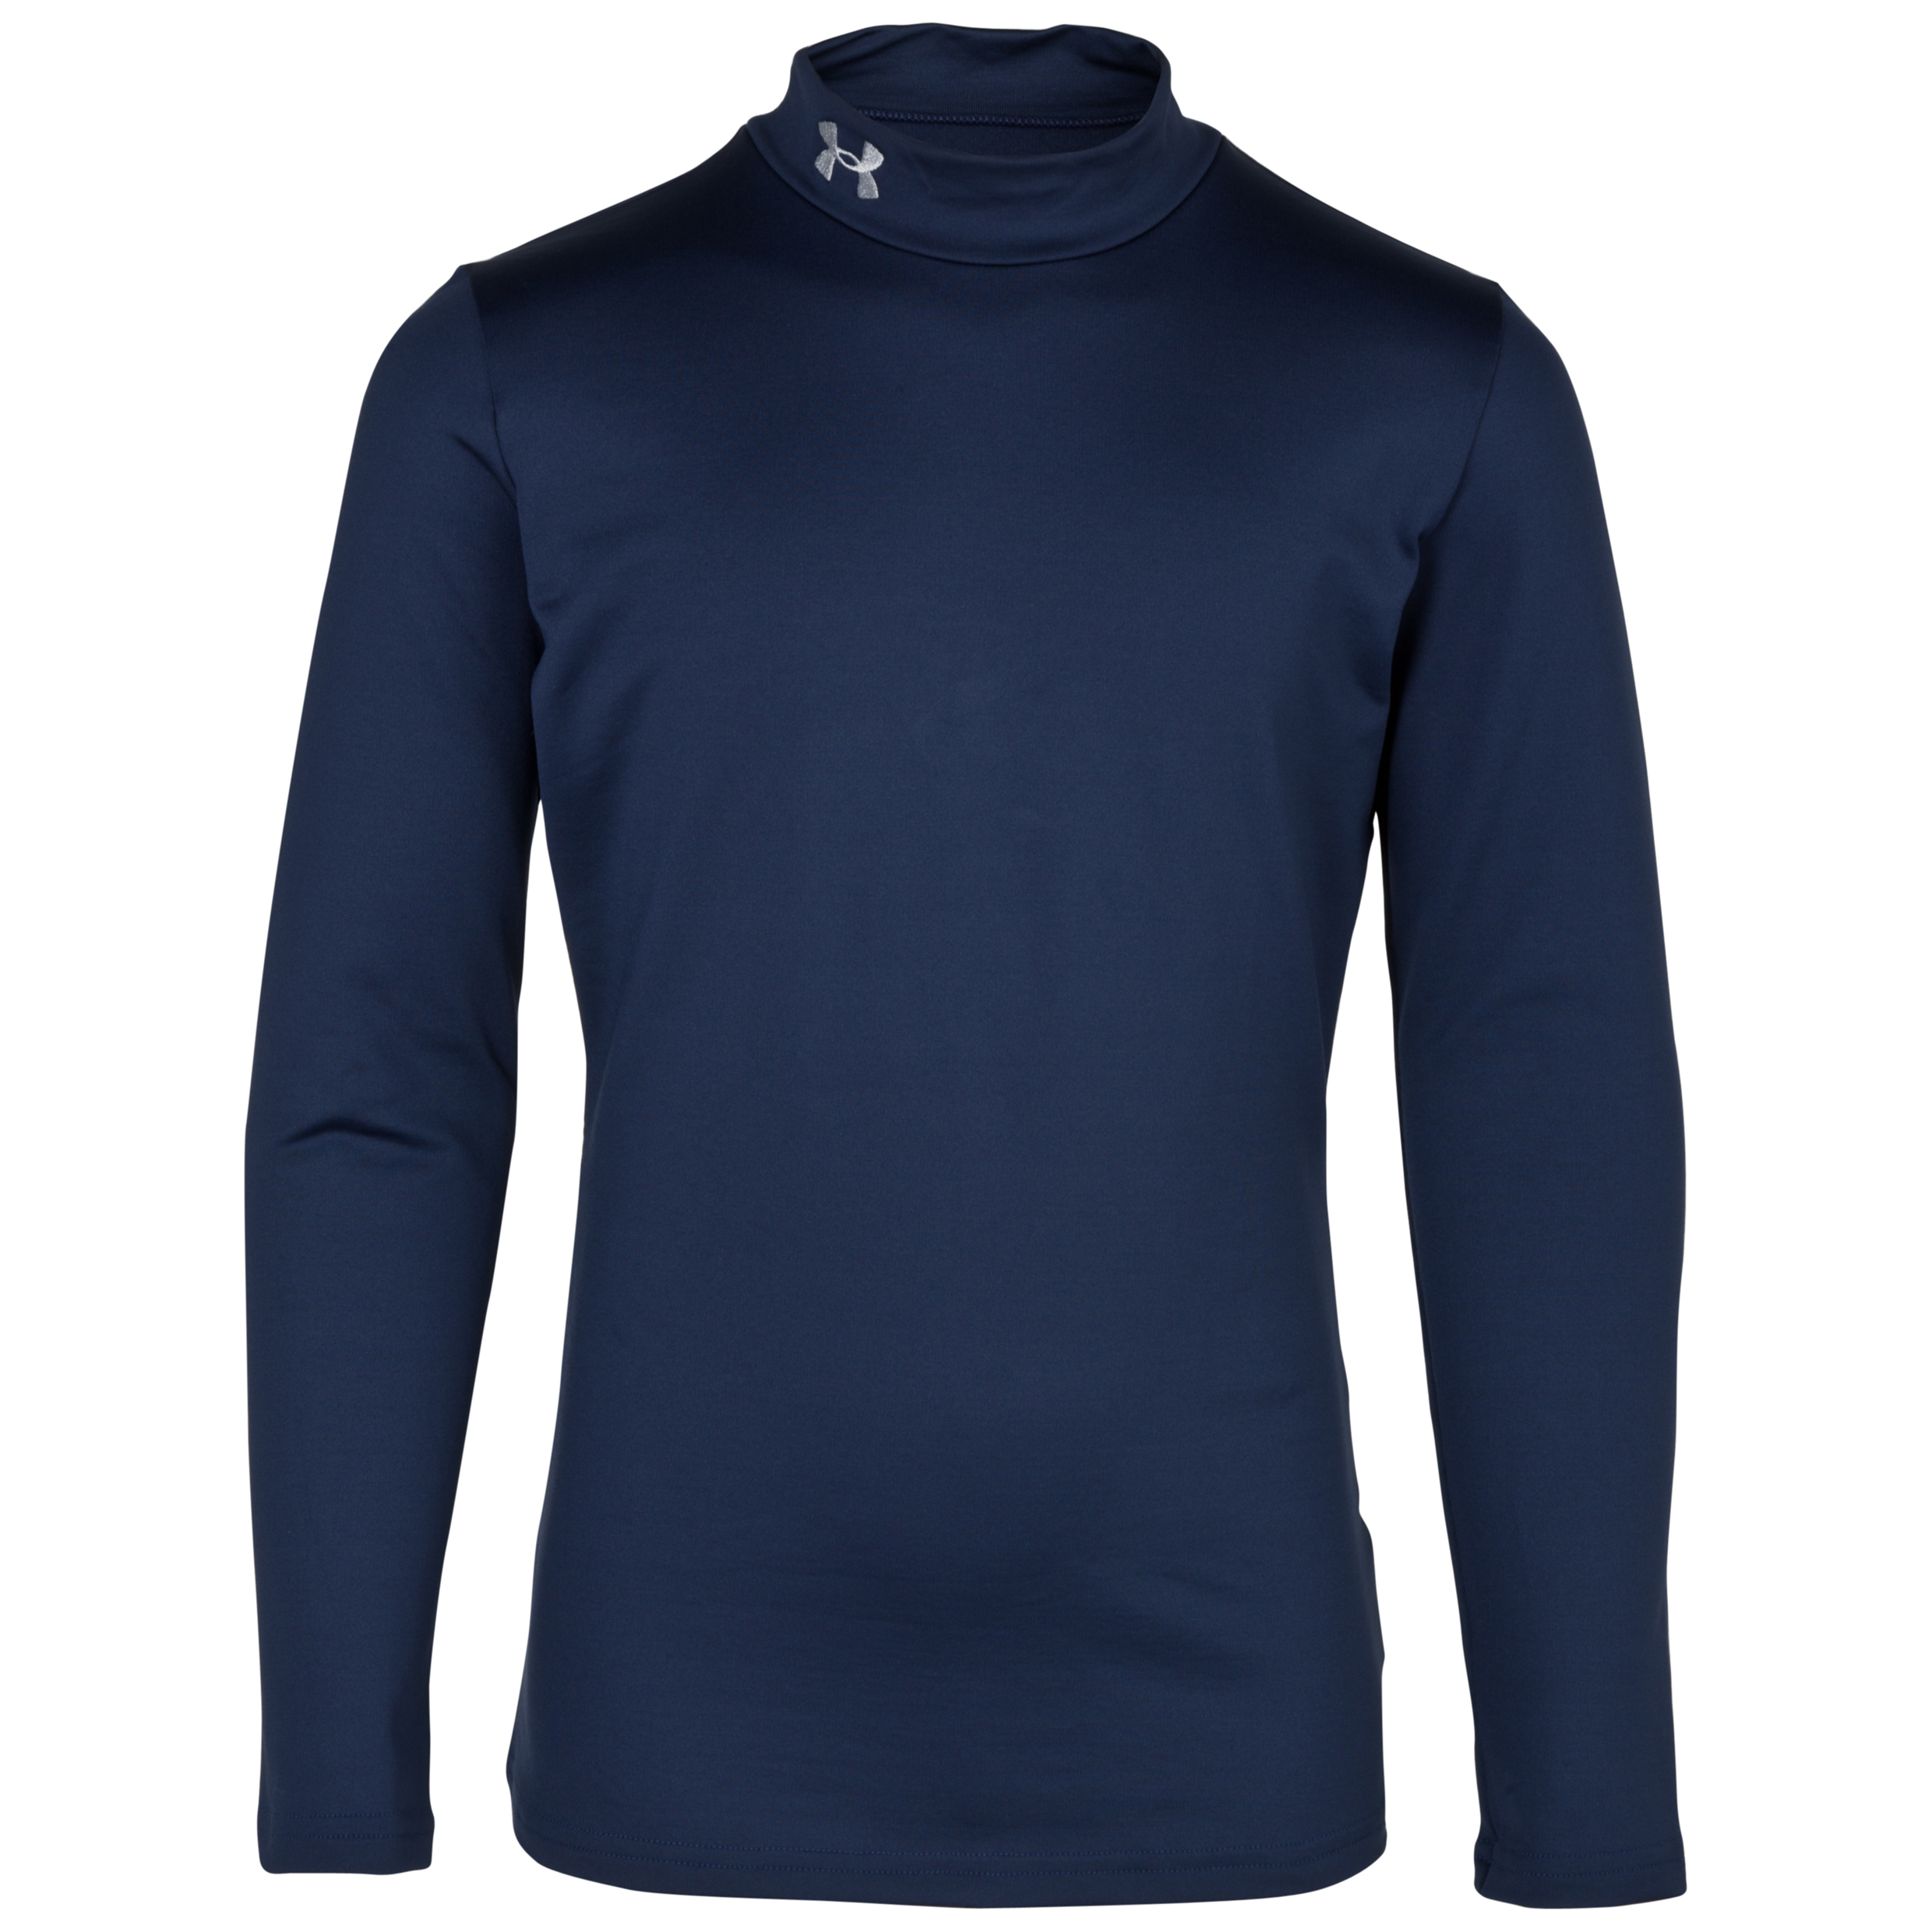 Under Armour Evo Coldgear Mock Base Layer Top - Long Sleeve - Kids Navy